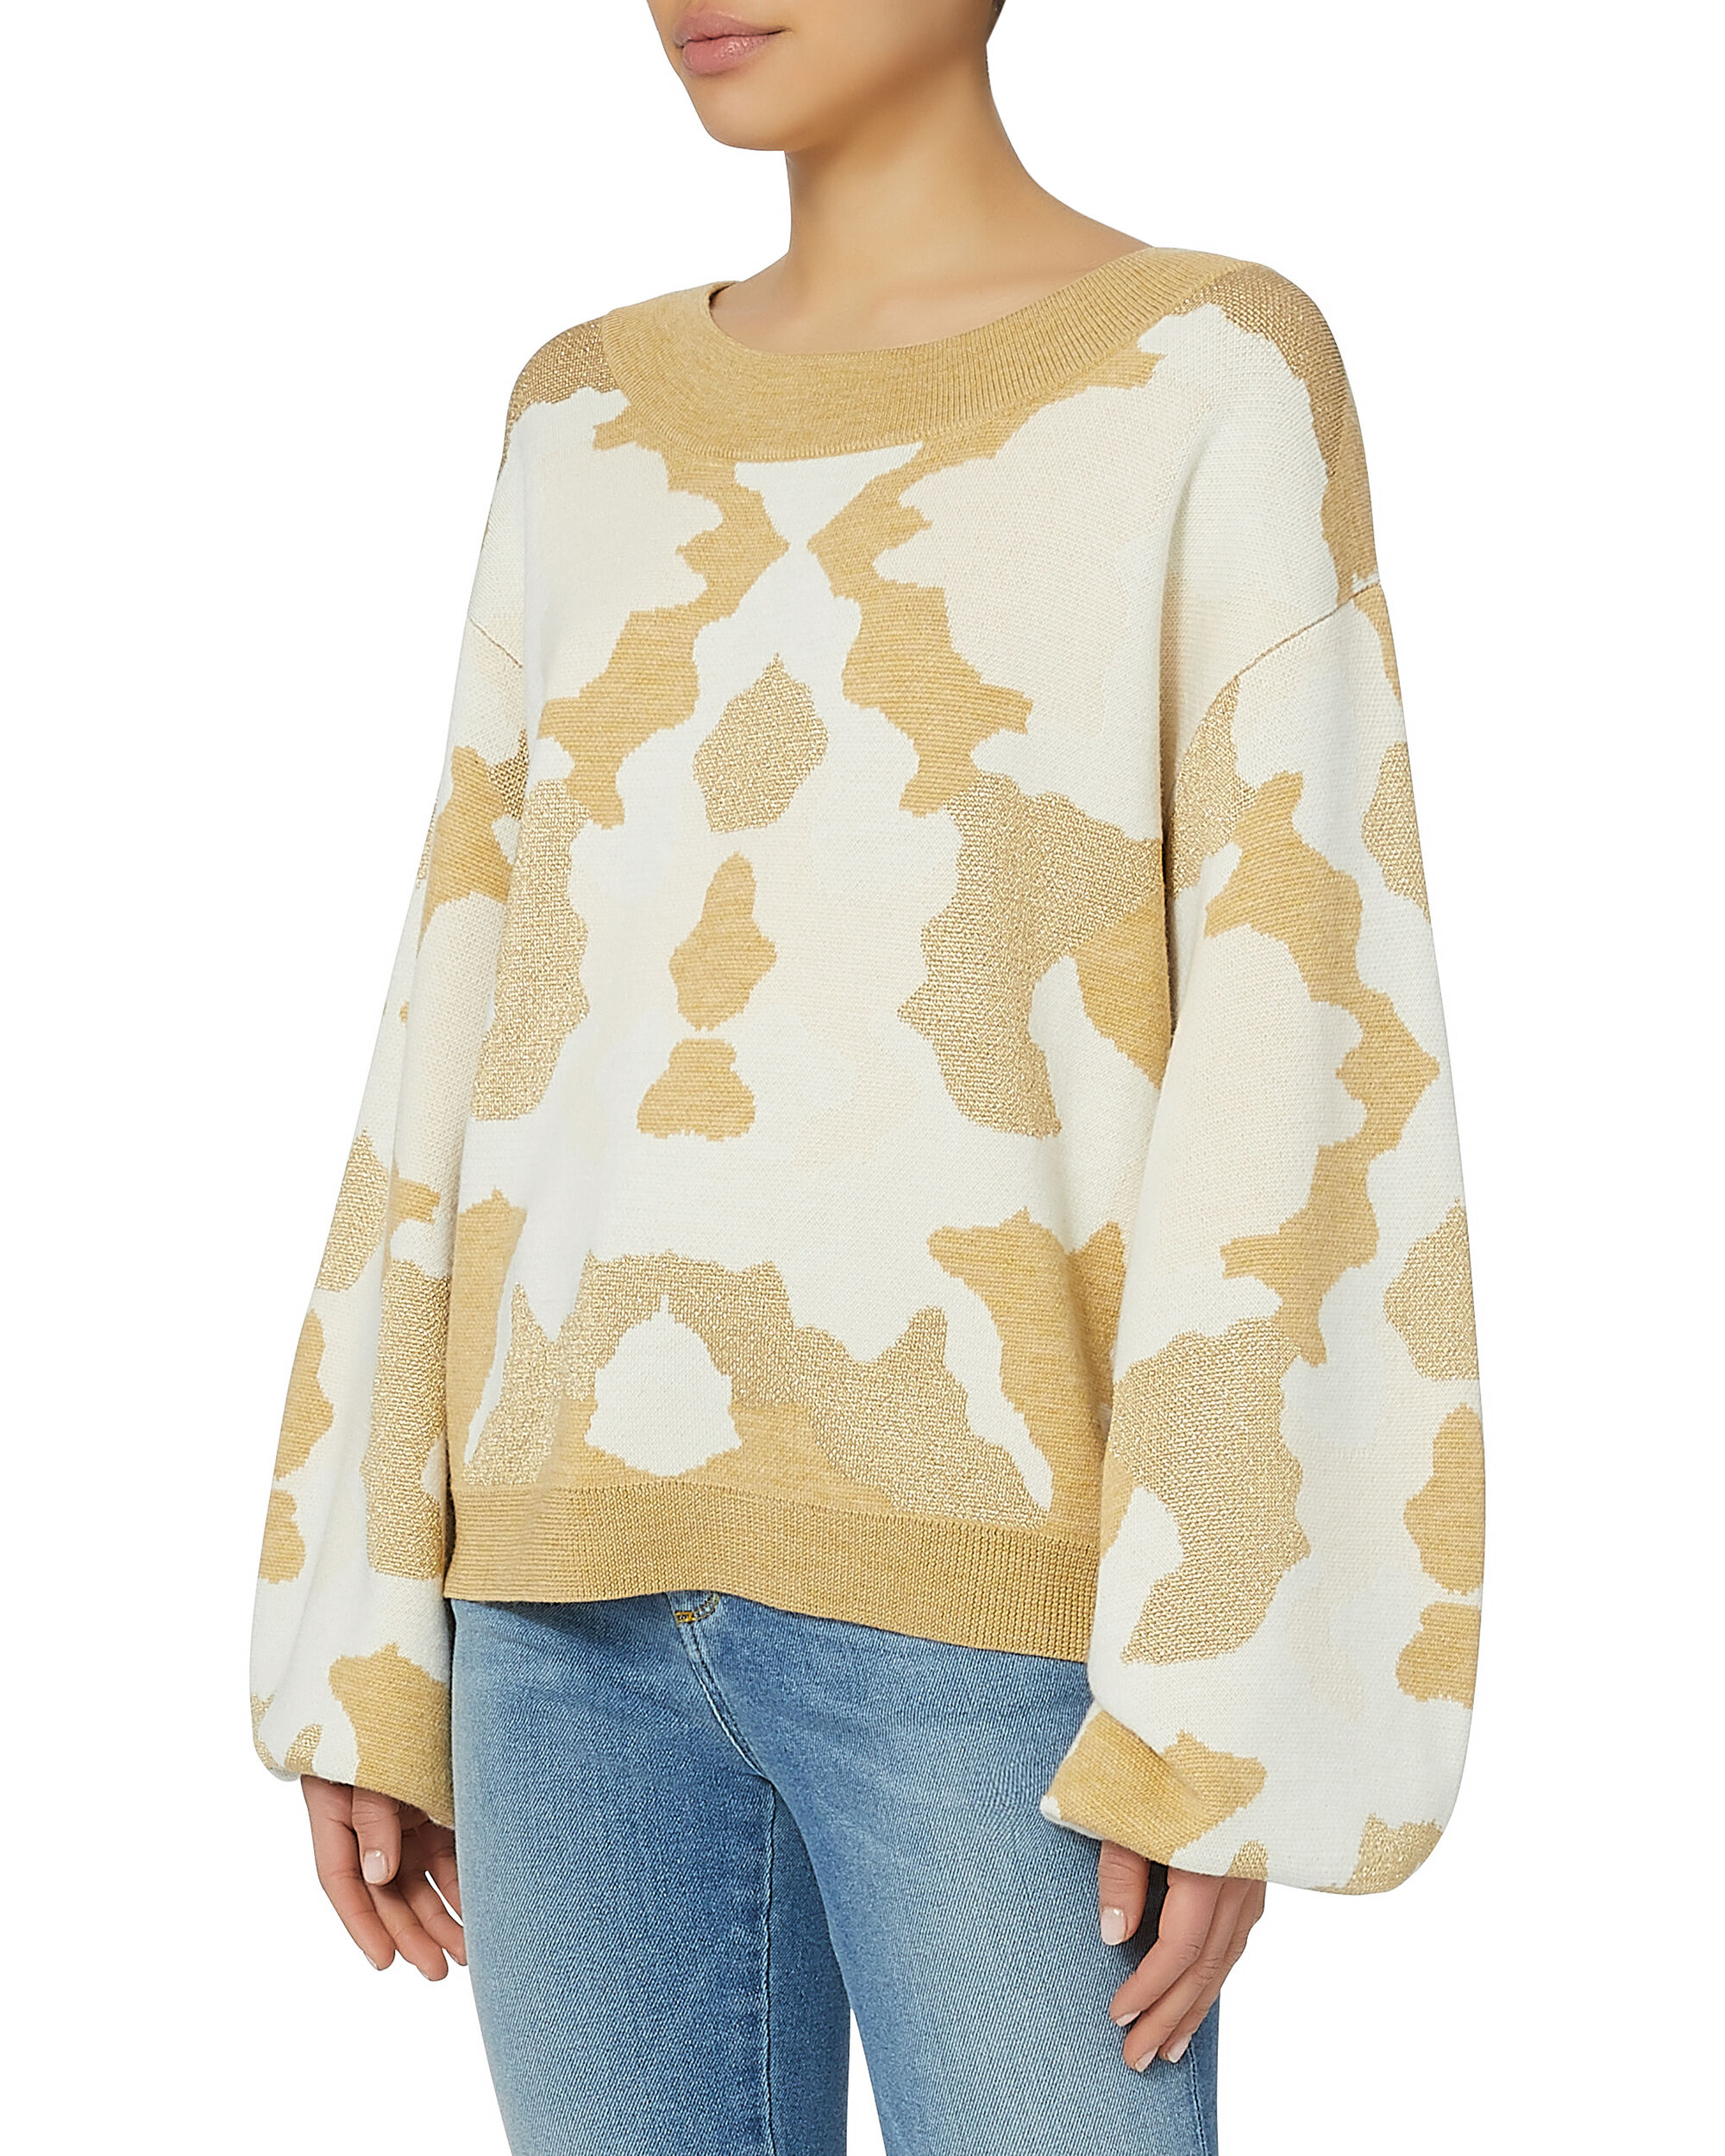 Camo Balloon Sleeve Sweater, PATTERN, hi-res